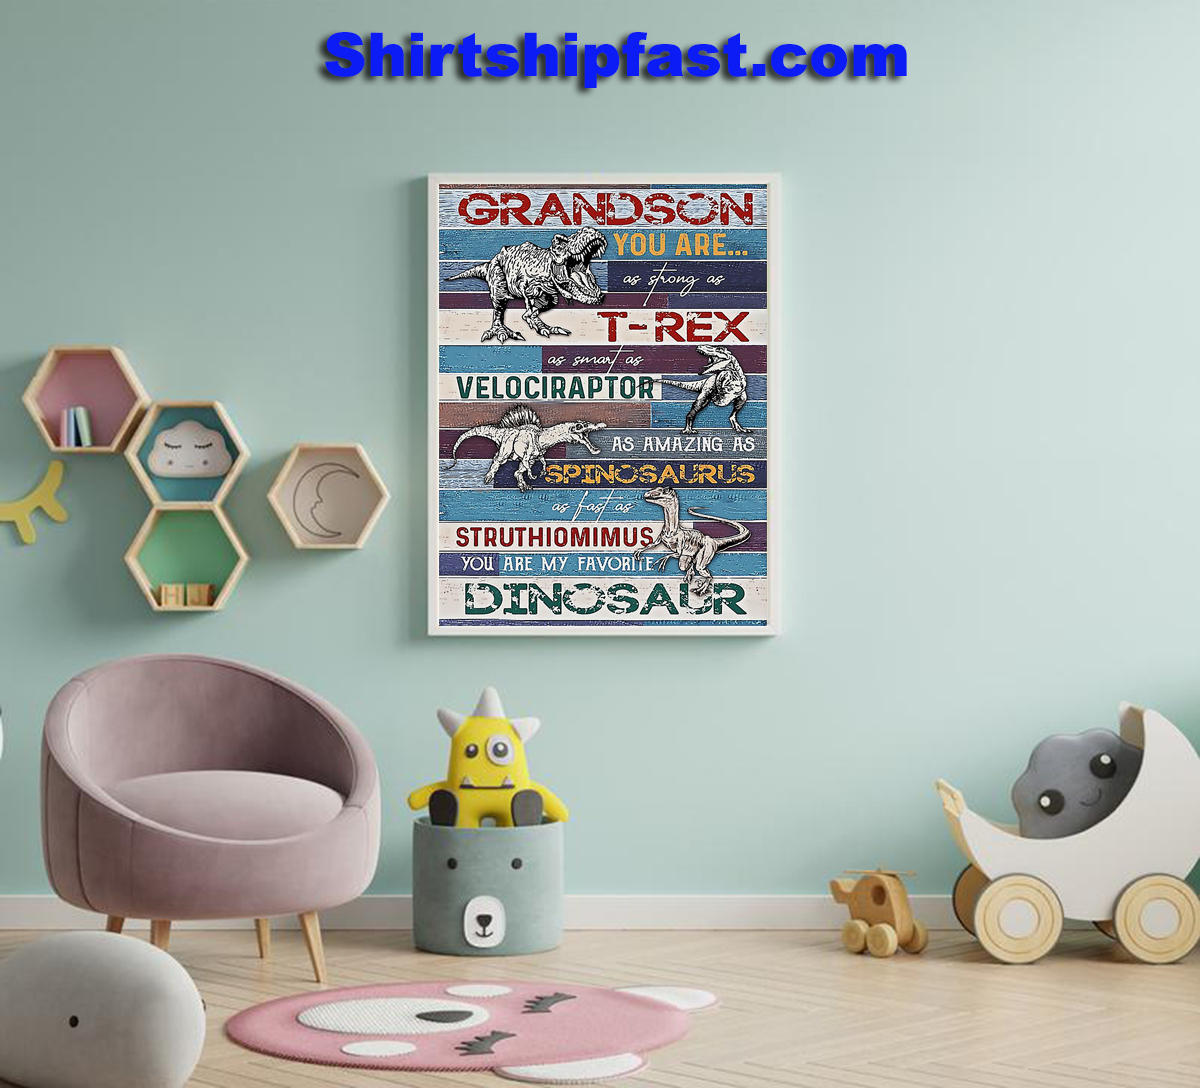 Grandson You are my favorite dinosaur poster - Picture 1